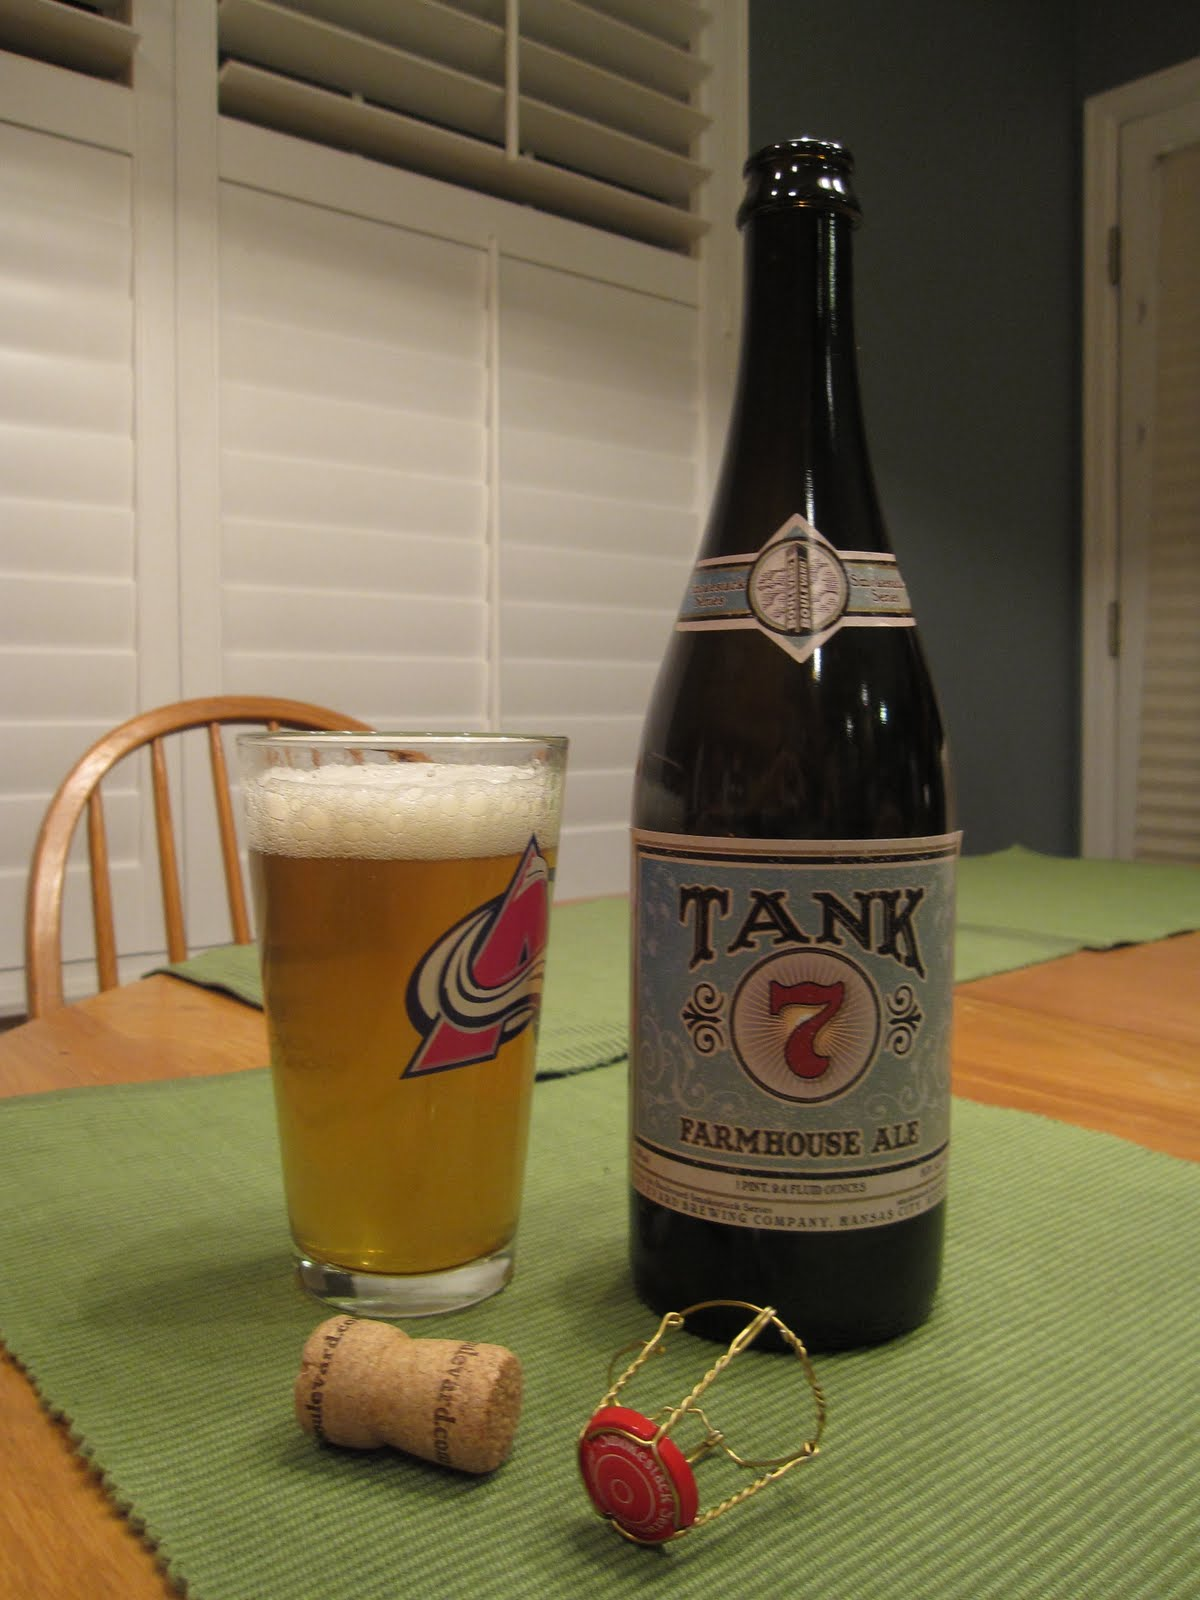 Non Snob Beer Reviews Boulevard Tank 7 Farmhouse Ale